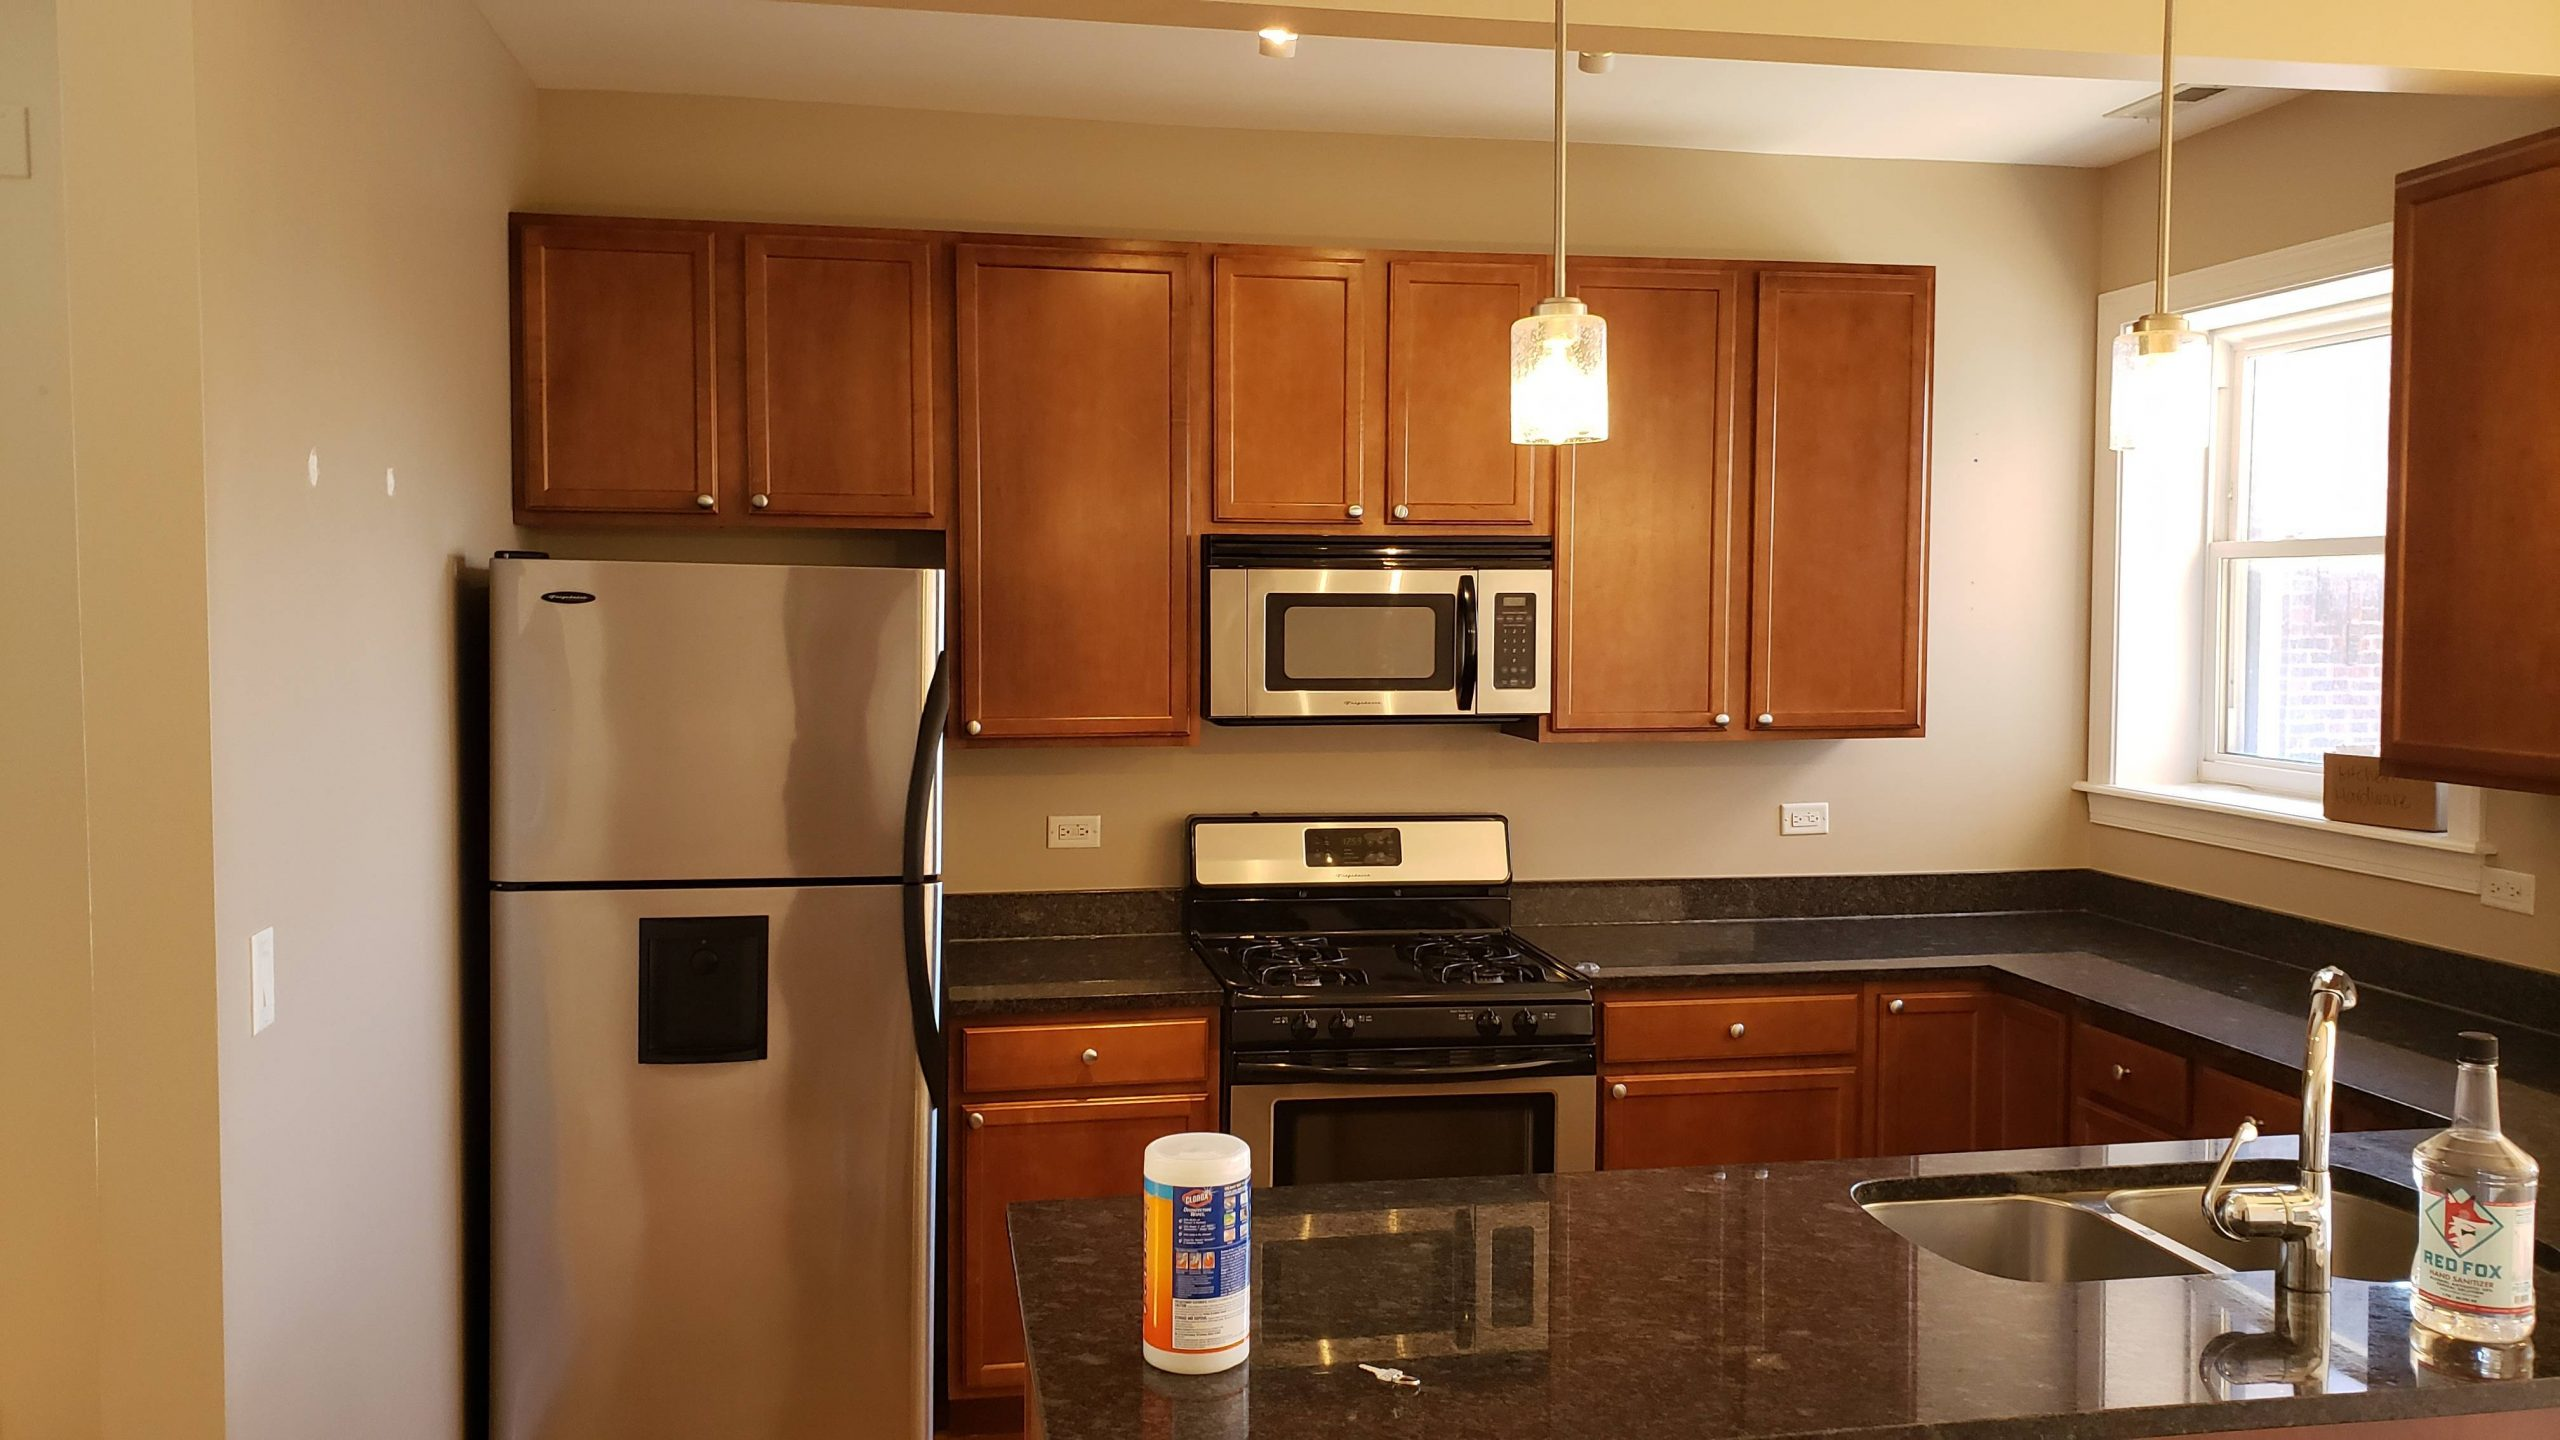 2020.04.22_Lakeview_Kitchen_cabinets_painting - Chicago-painter.-Kitchen-cabinets-painting.-Lakeview-2.jpg